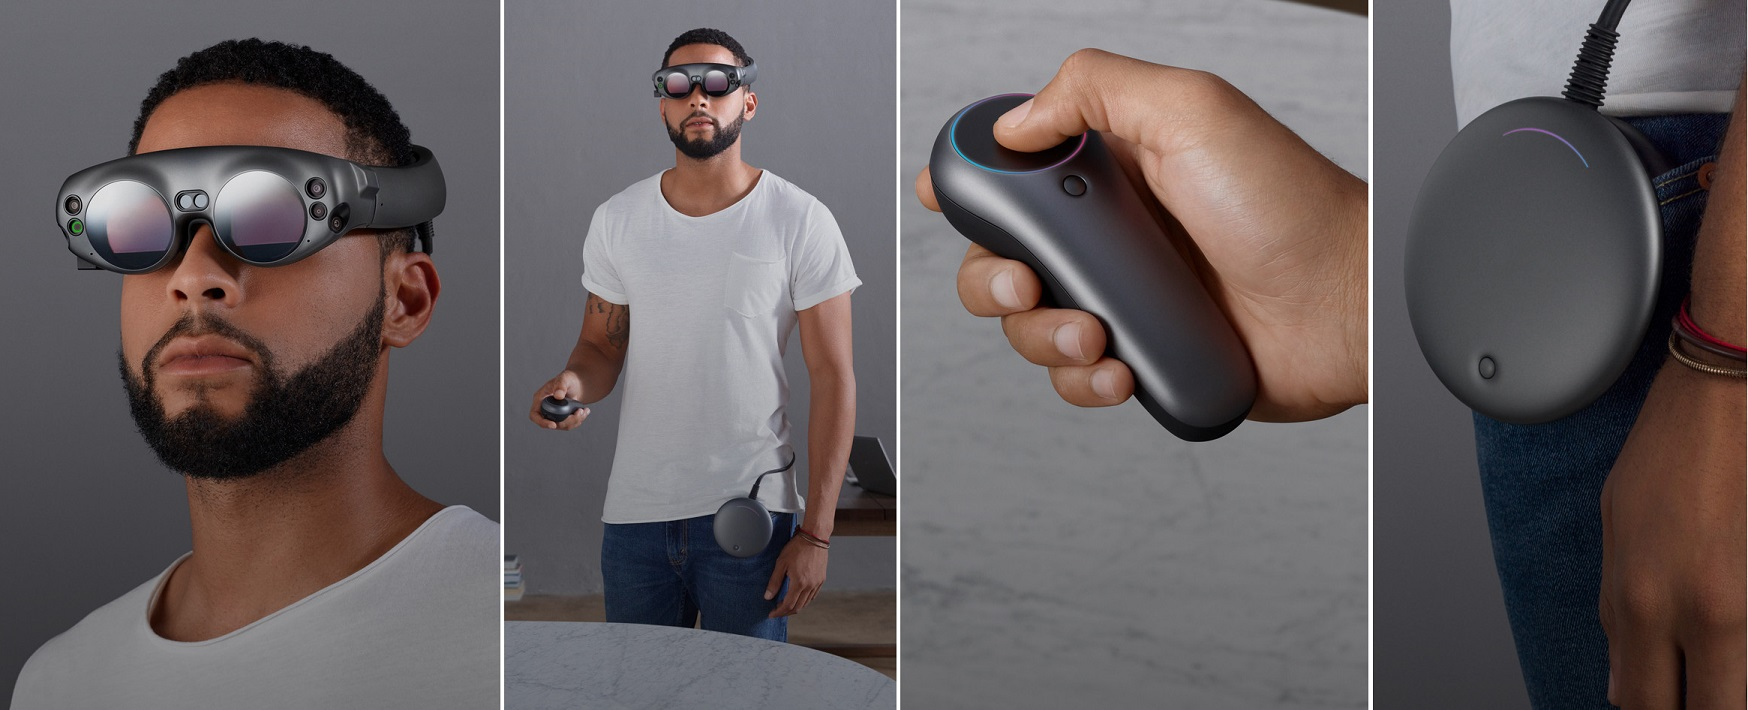 Magic Leap AR - Augmented Reality headset